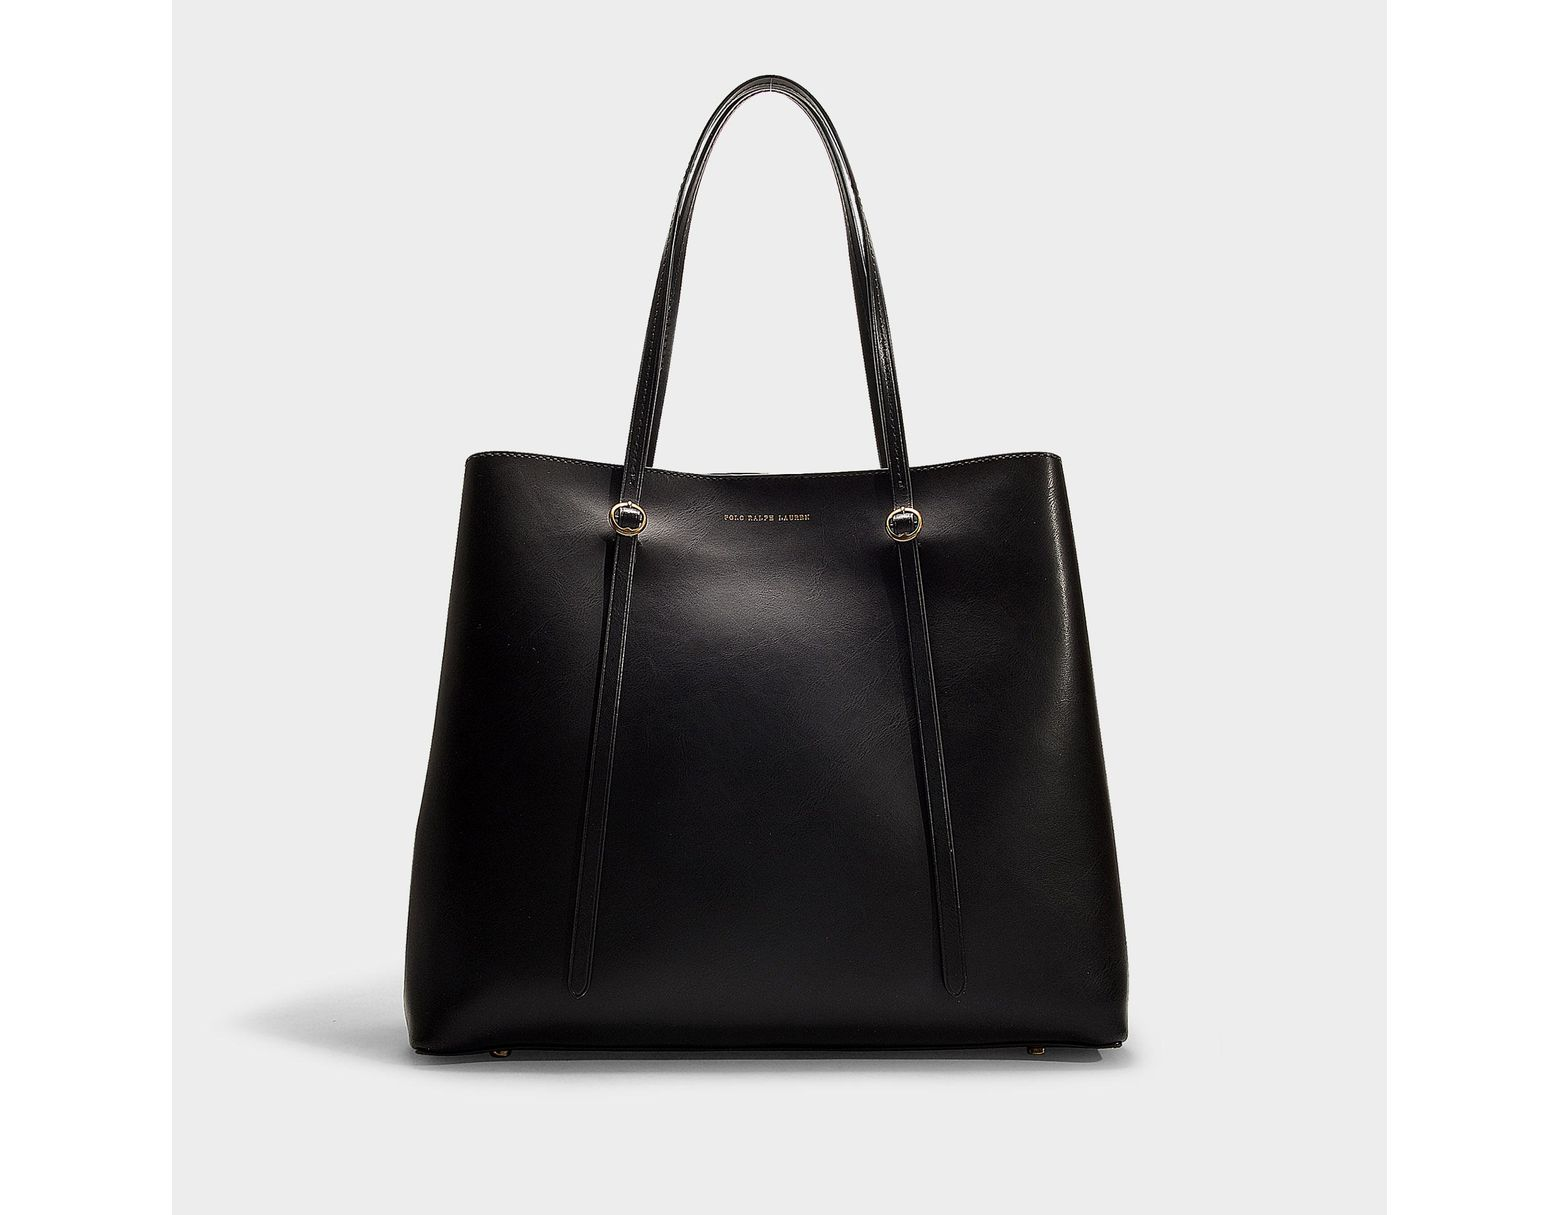 15822b598240 Polo Ralph Lauren Leather Lennox Tote in Black - Save 73% - Lyst